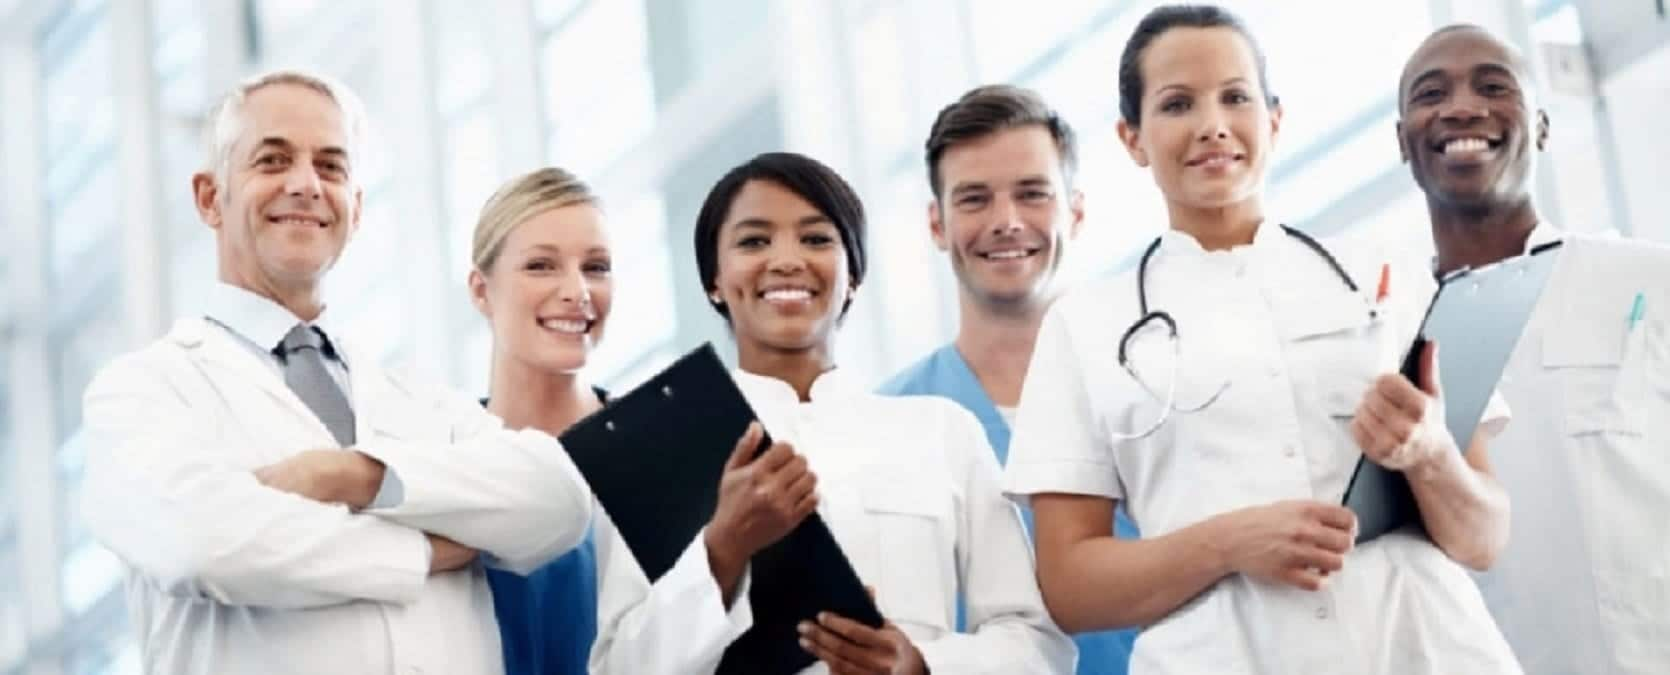 Customer Service in Healthcare Training Course